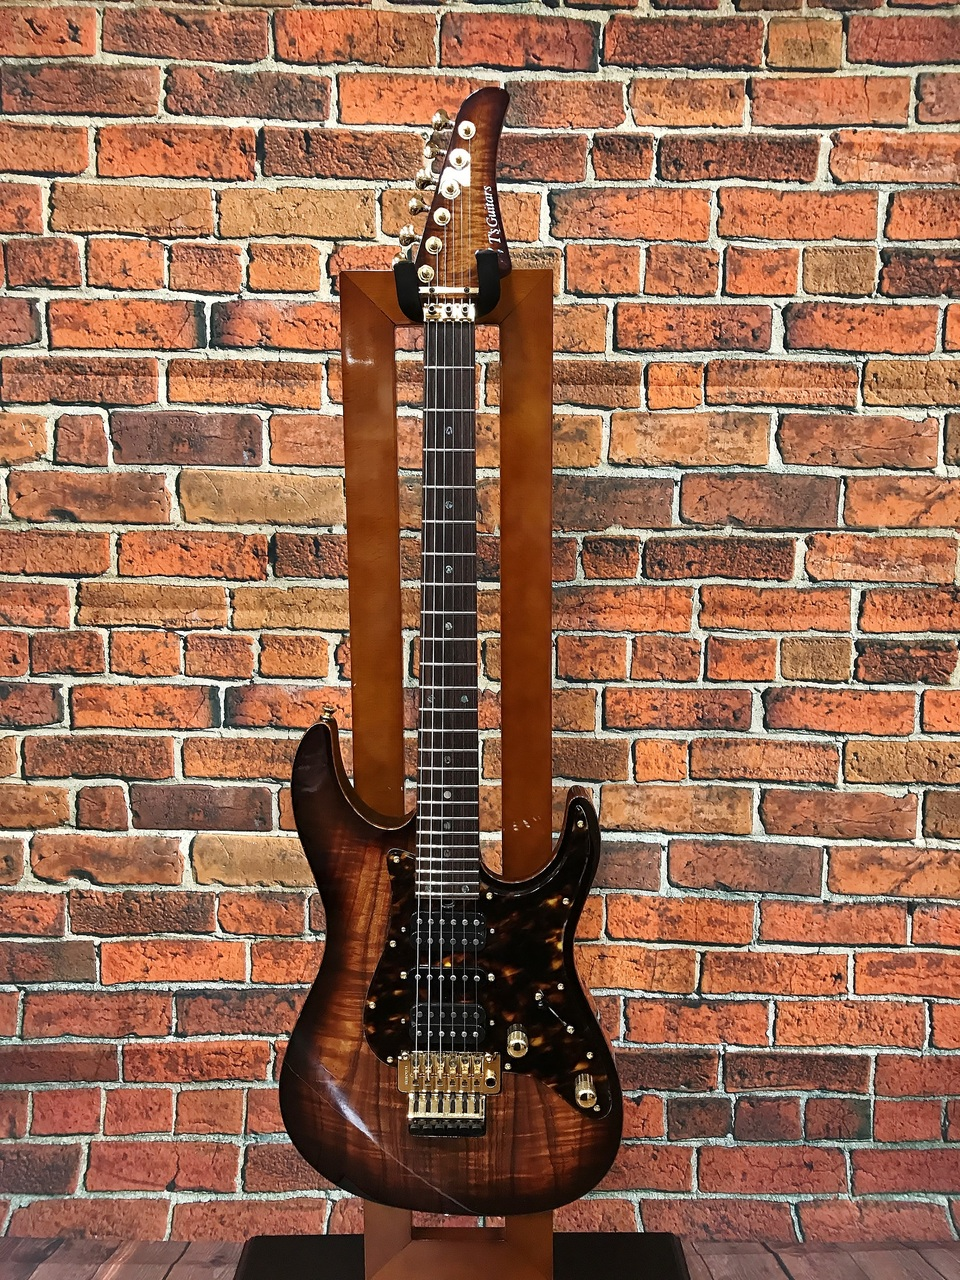 T's Guitars DSTC-Pro24 Koa Top Rosewood Neck [used beauty goods] [Made in Japan] [custom products]